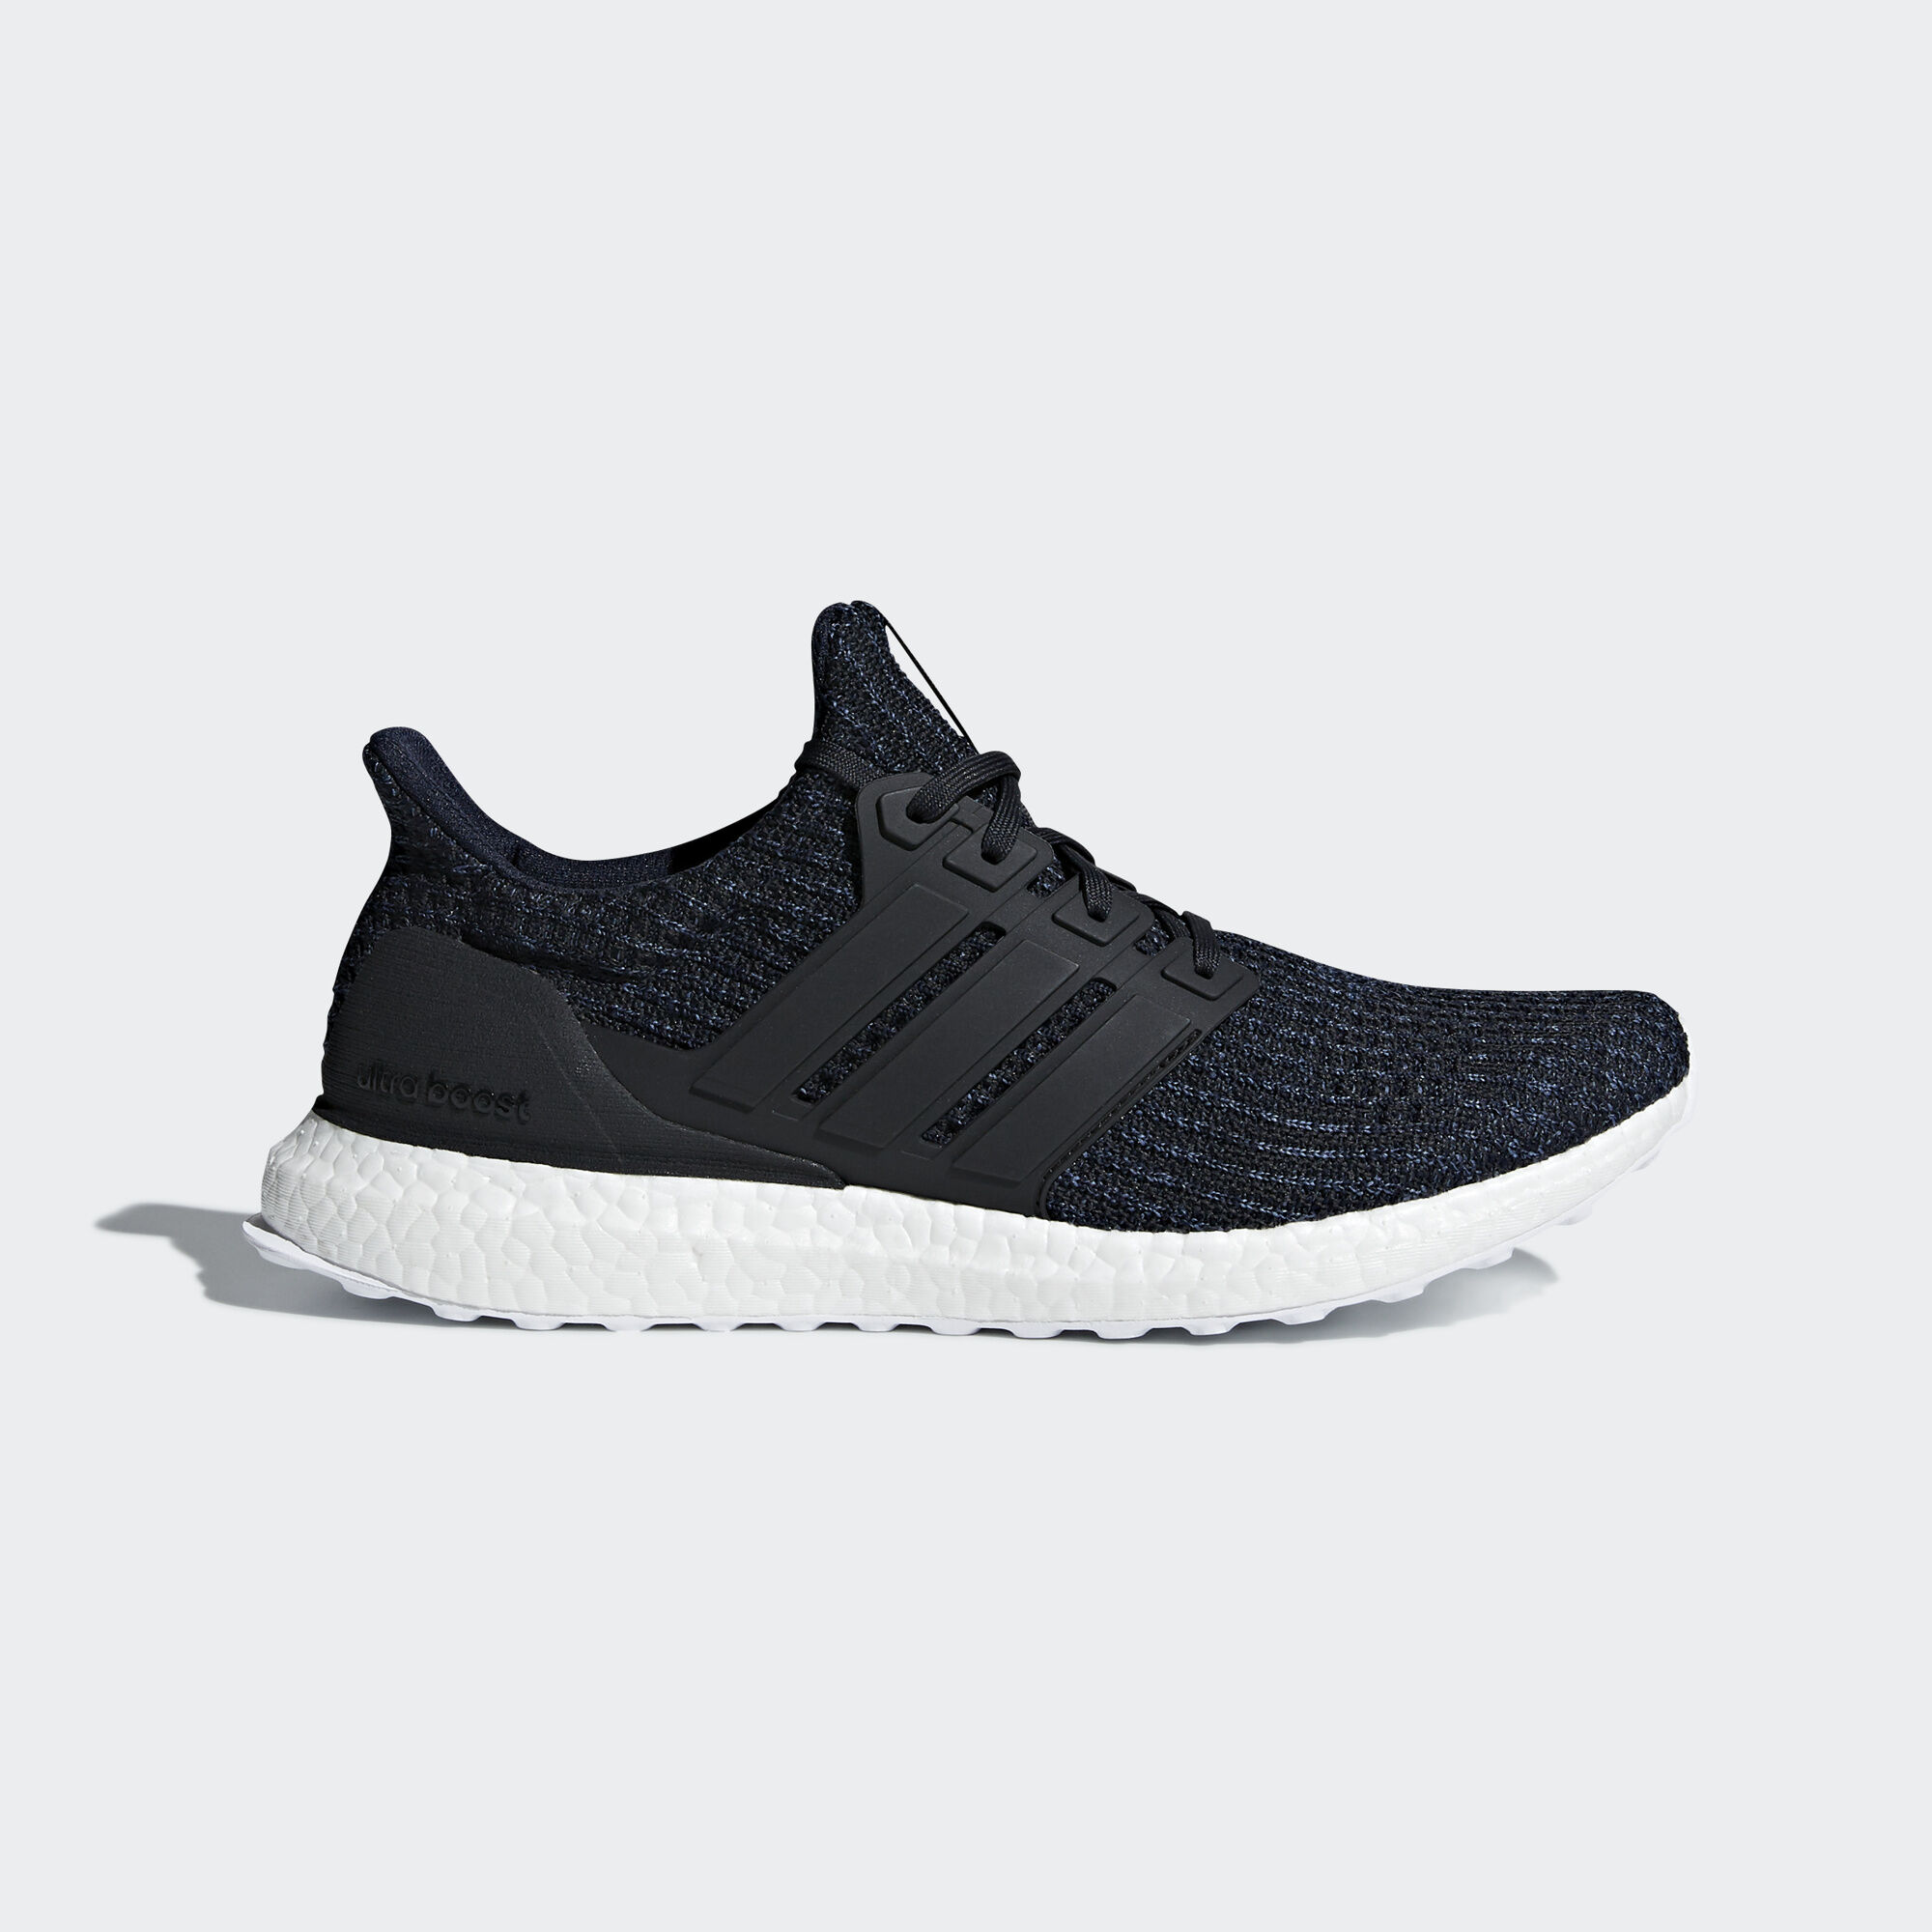 Nakedvice UltraBOOST Parley sale cheapest price eastbay exclusive 2014 unisex cheap price cheap official site cCd8qk